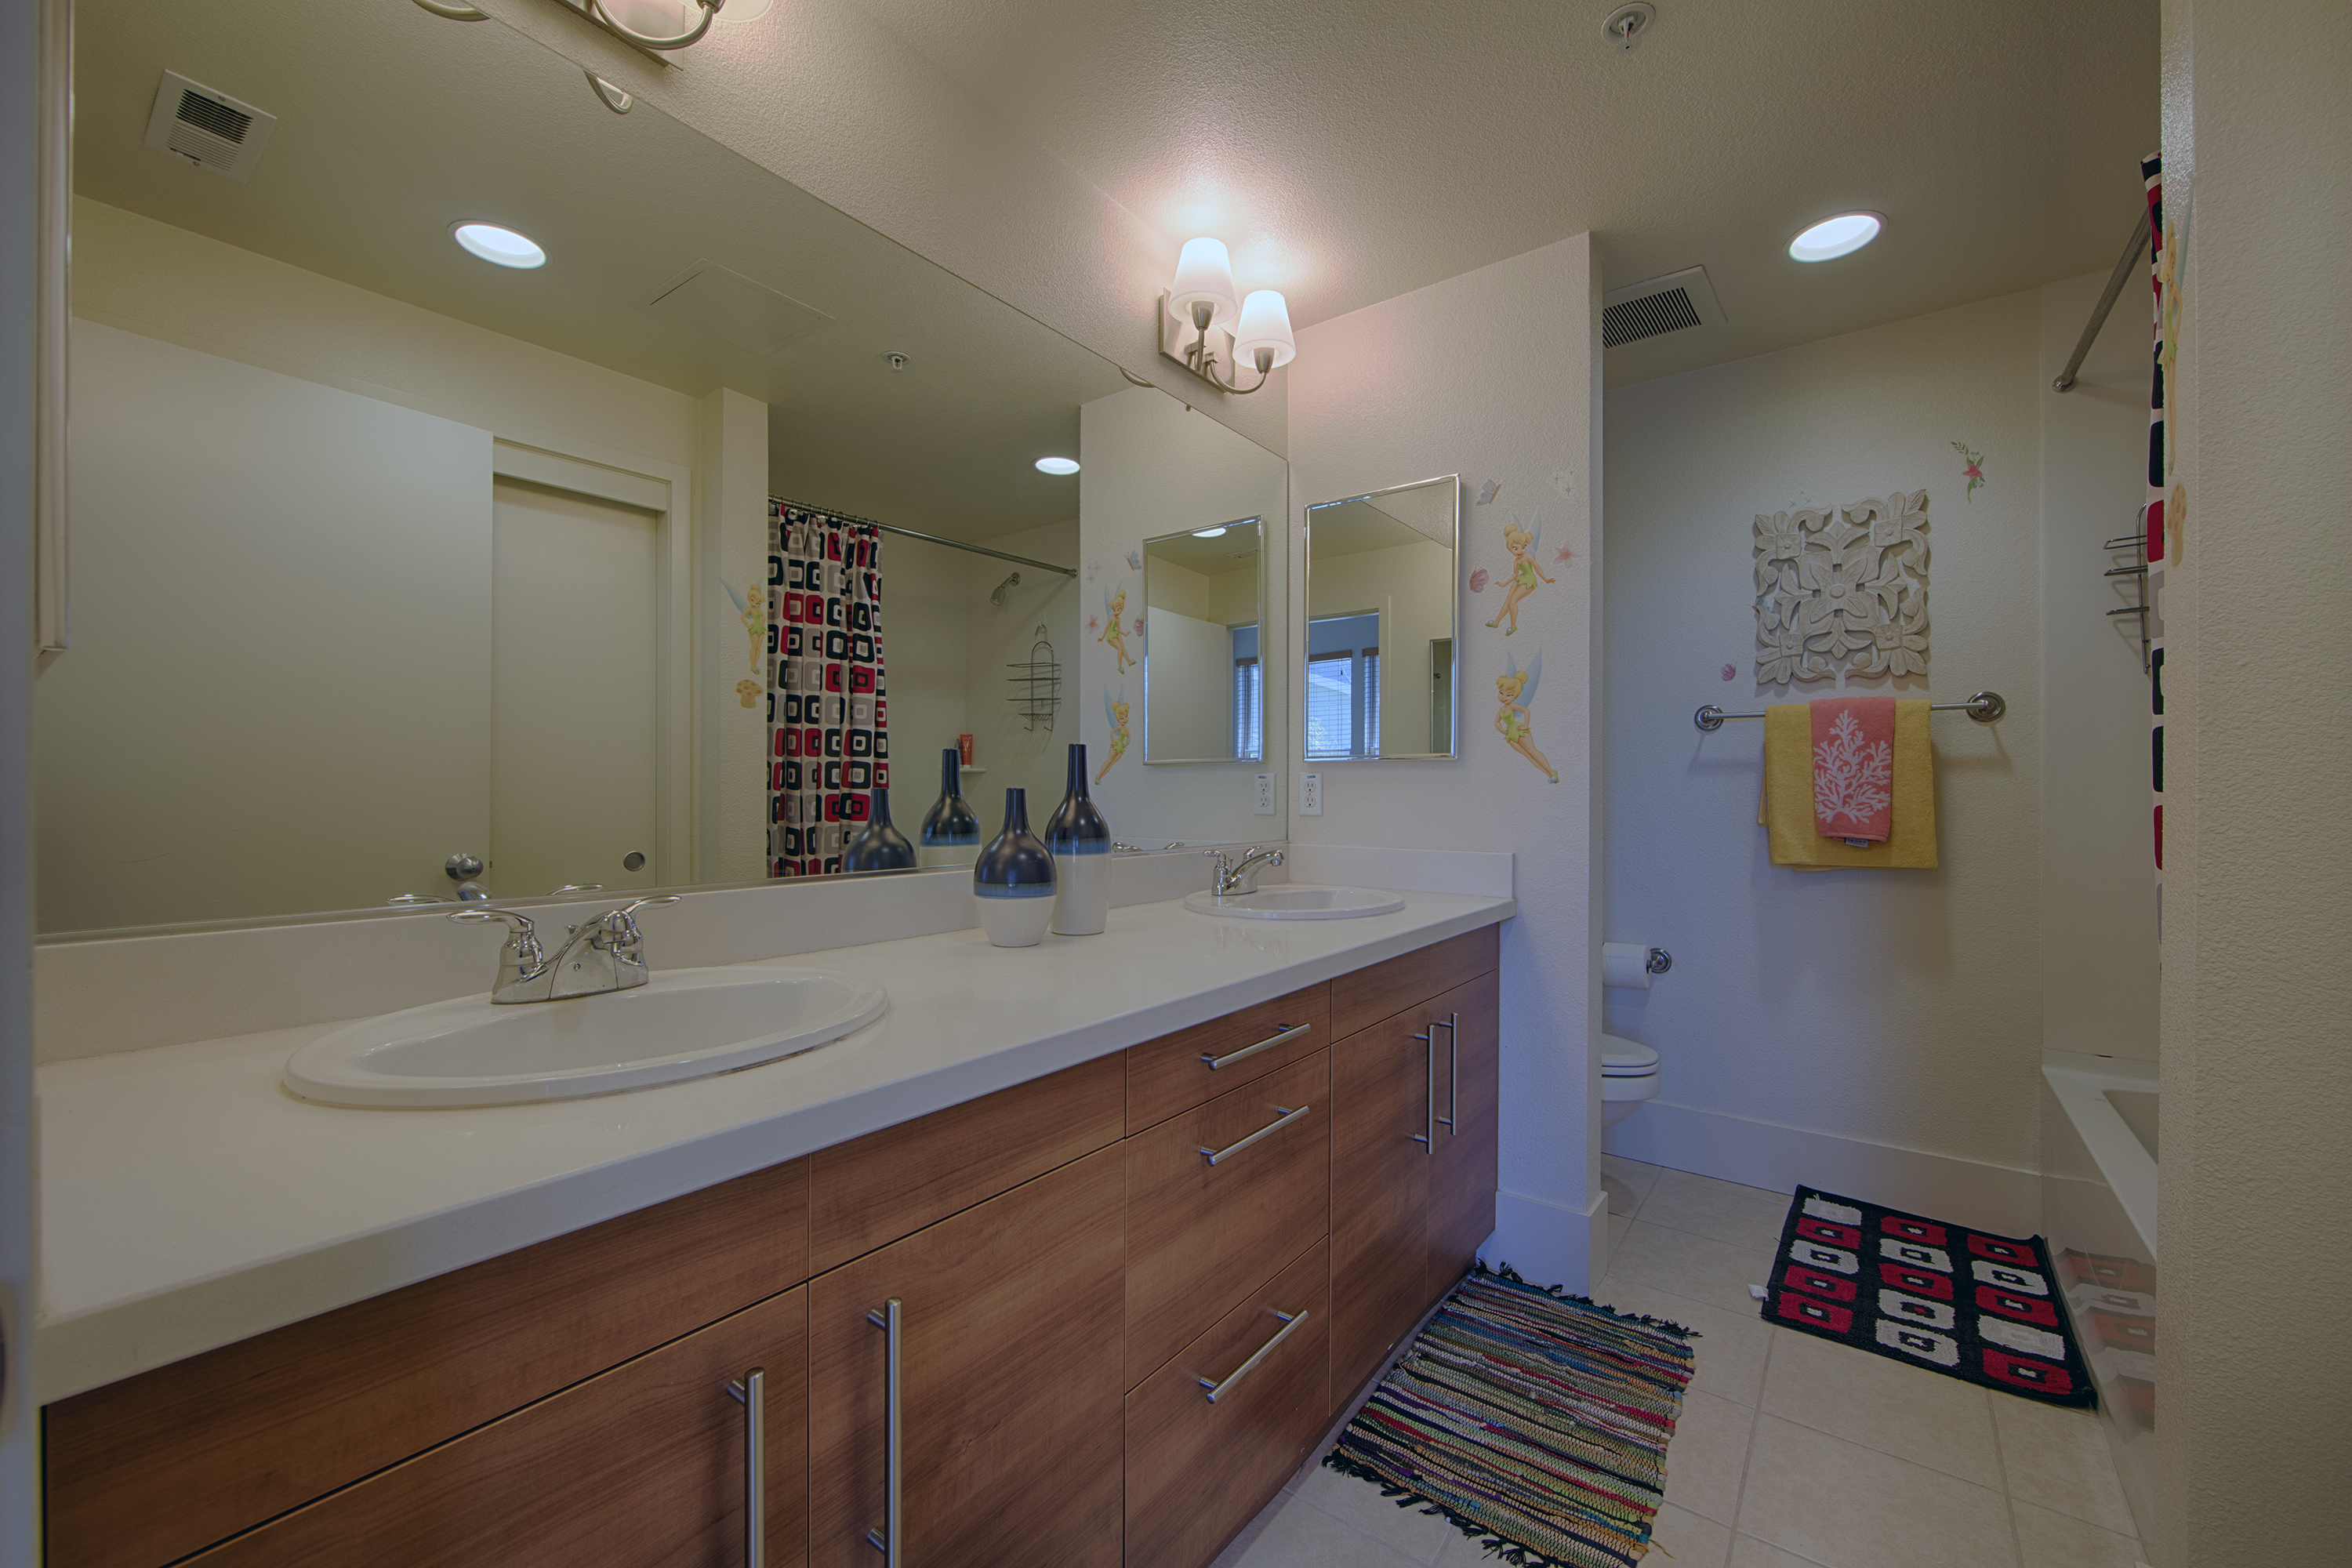 846 Altaire Walk, Palo Alto 94303 - Bathroom 2 (A)